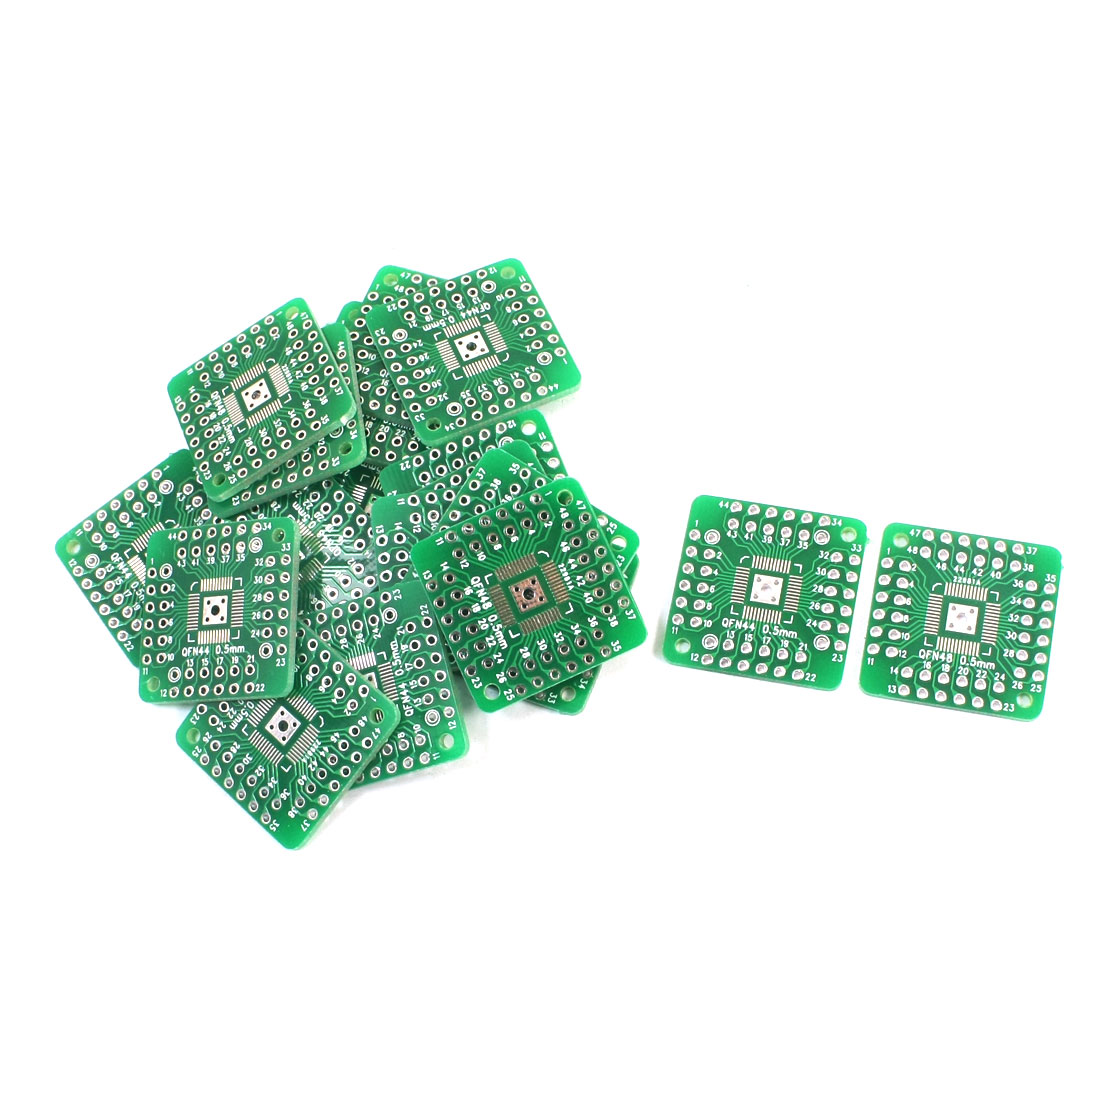 20Pcs Dual Sides SMD QFN48 QFN44 0.5mm to DIP 48/44 2.54mm IC PCB Adapter Plate Convertor Board